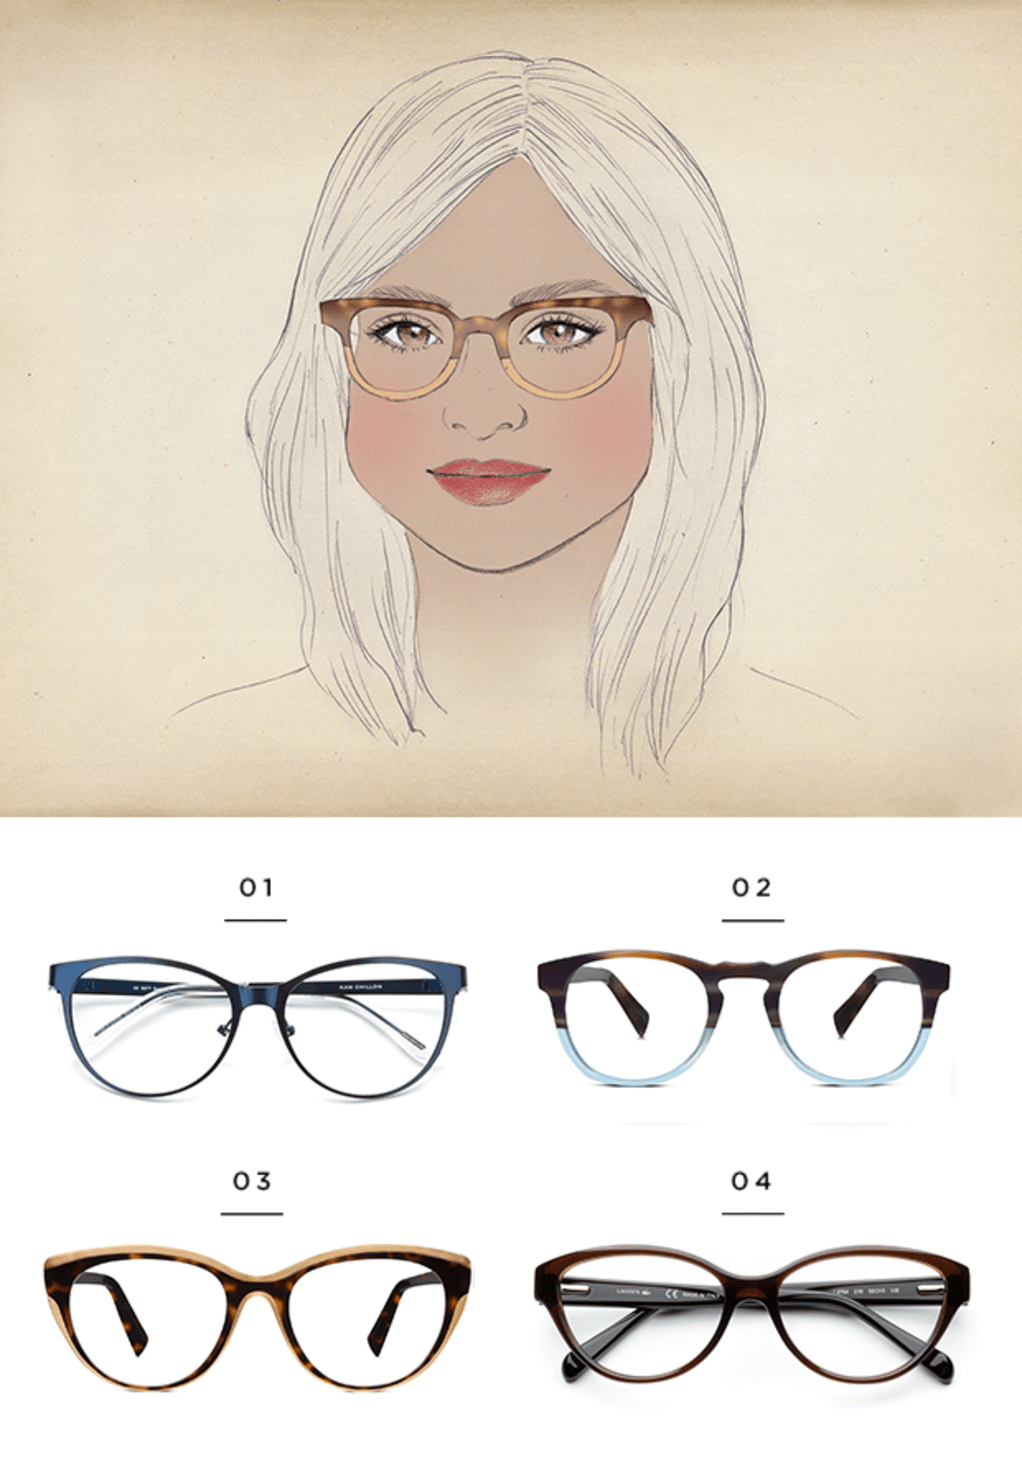 843d1ddb9633 The Best Glasses for All Face Shapes